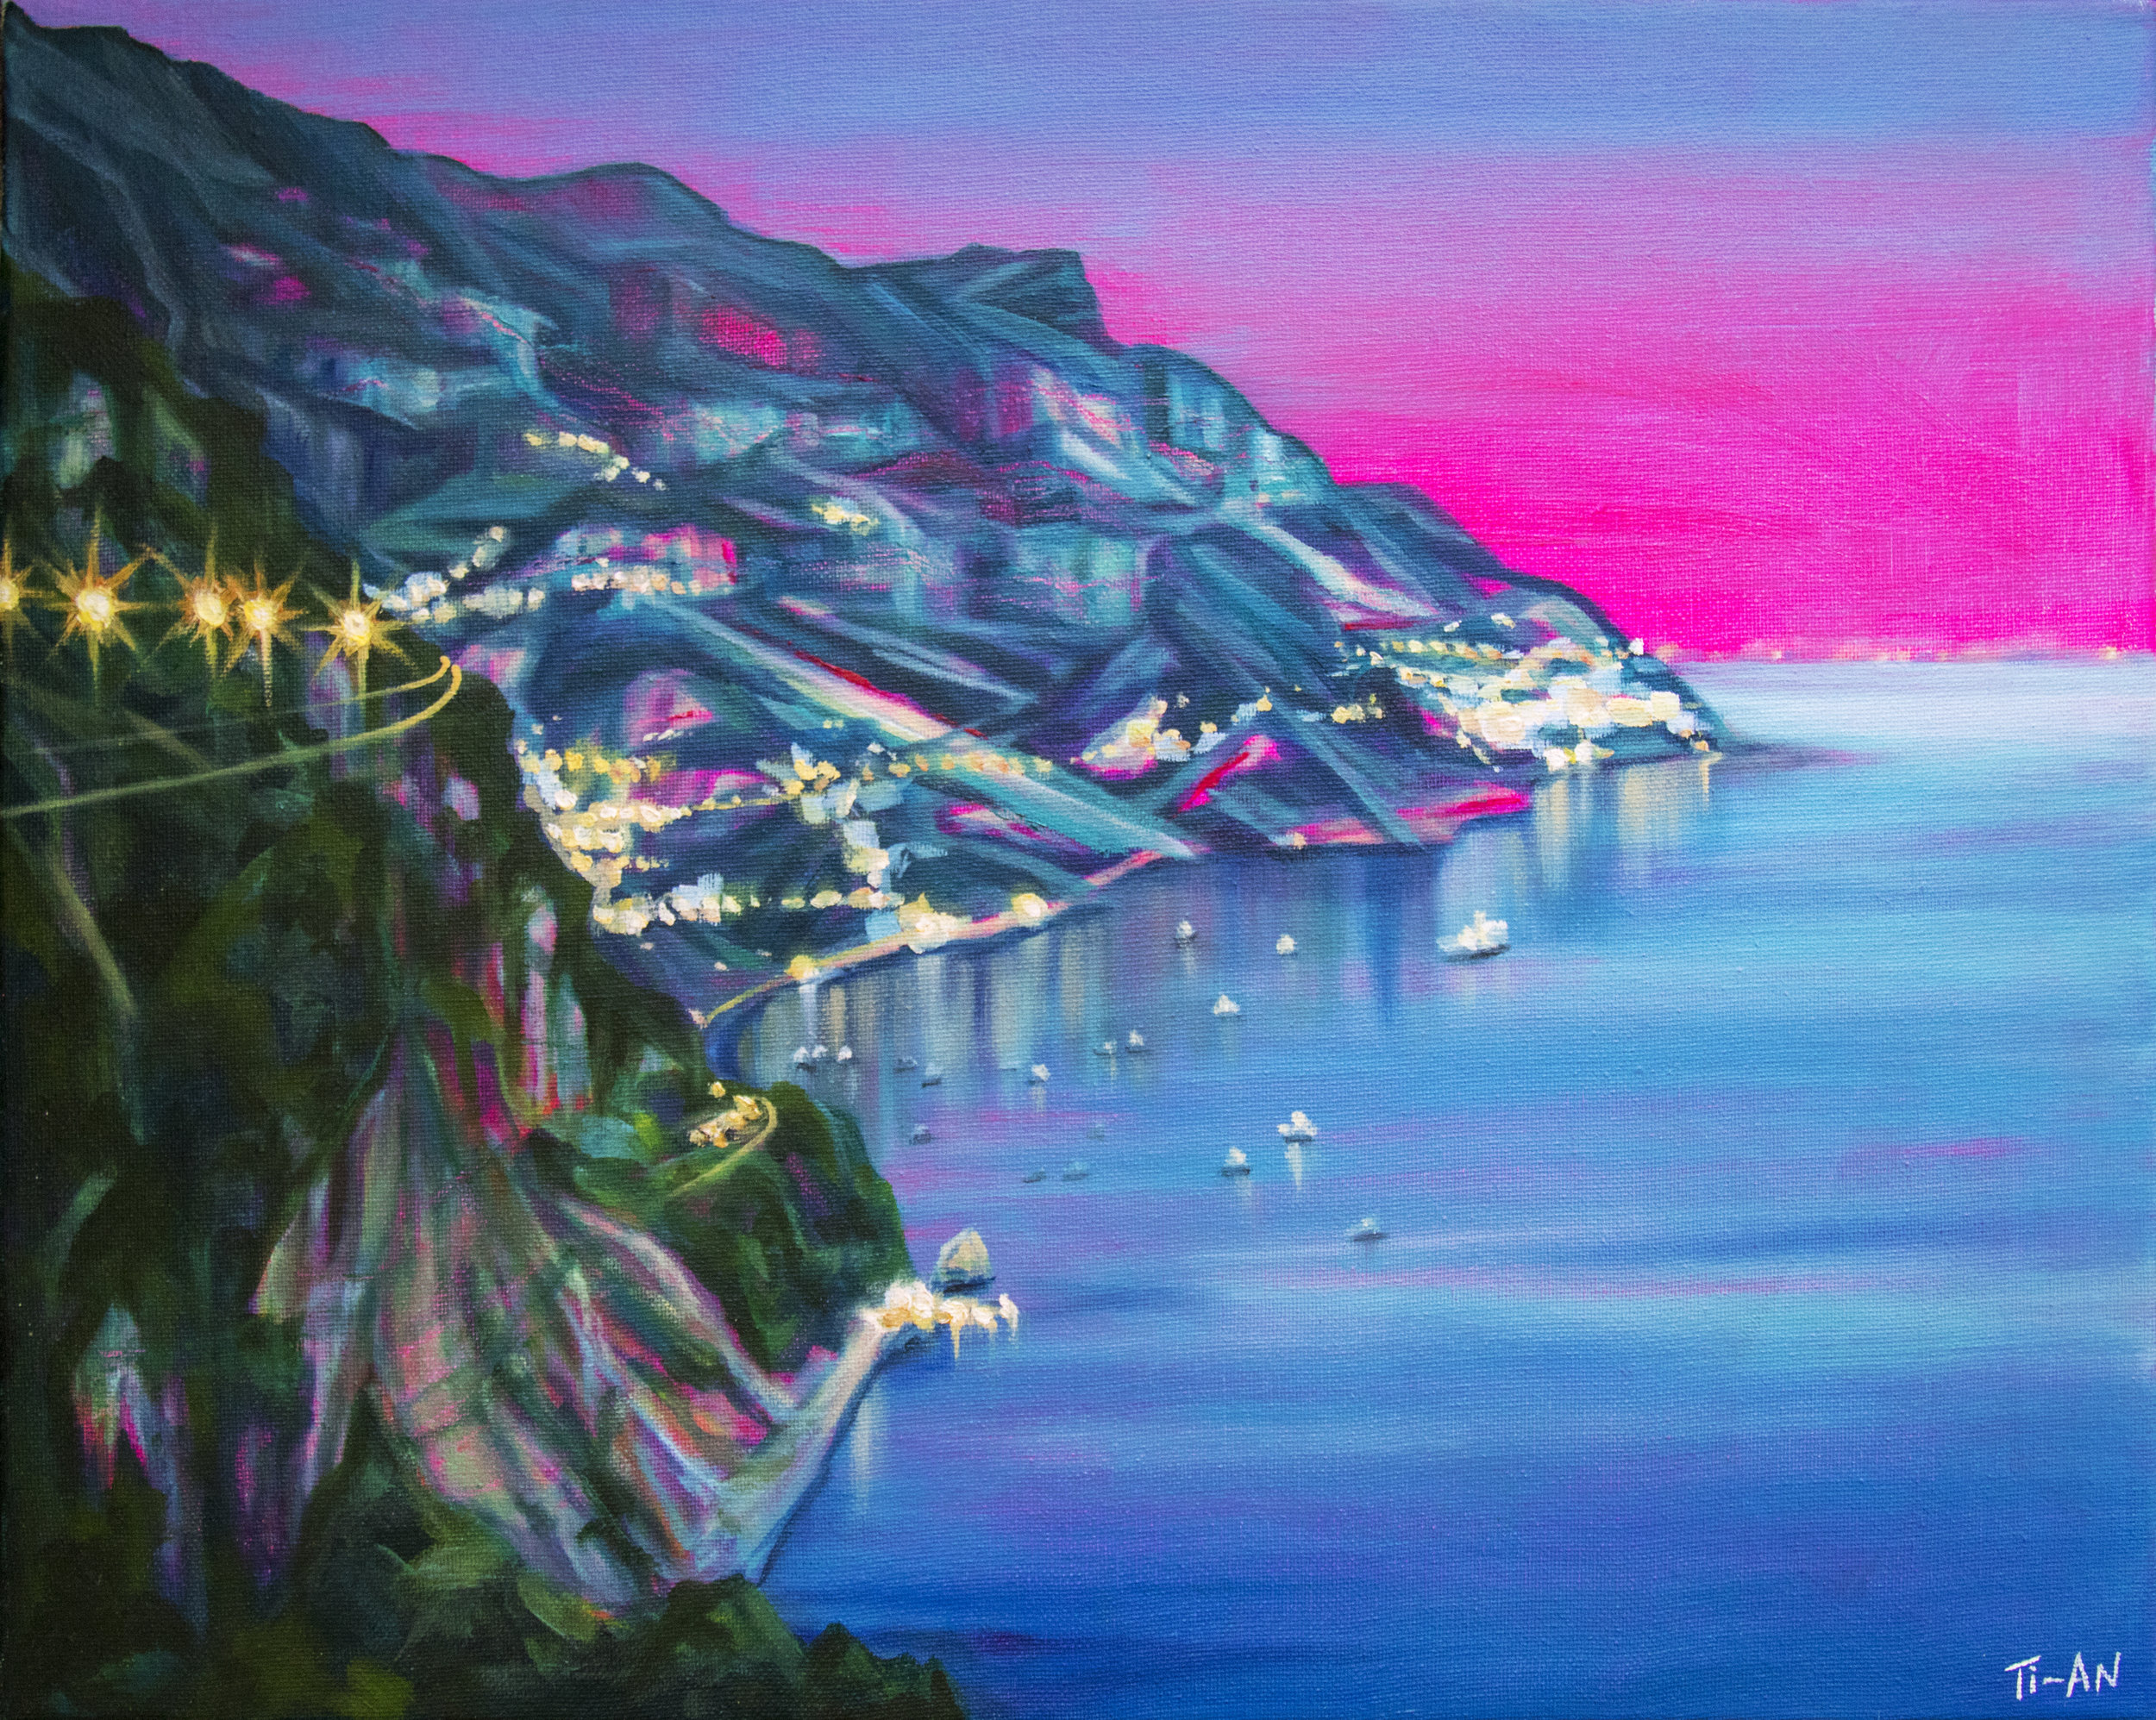 Approaching Positano at Dusk   16x20, oil and acrylic on canvas  2017